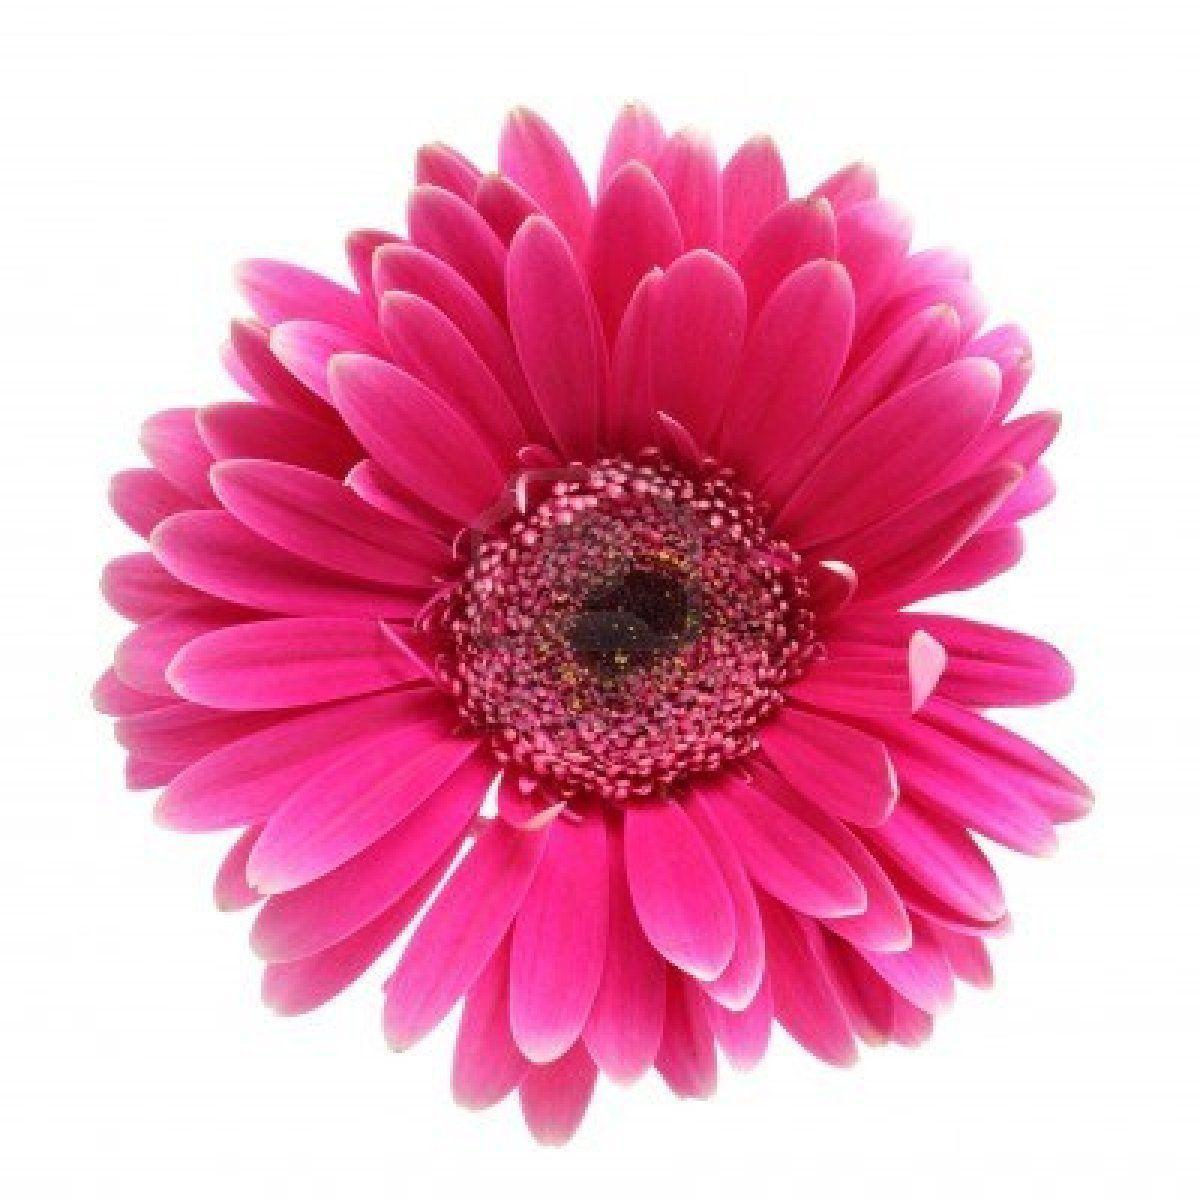 Pink Flowers Wallpaper: Pink Flower White Backgrounds